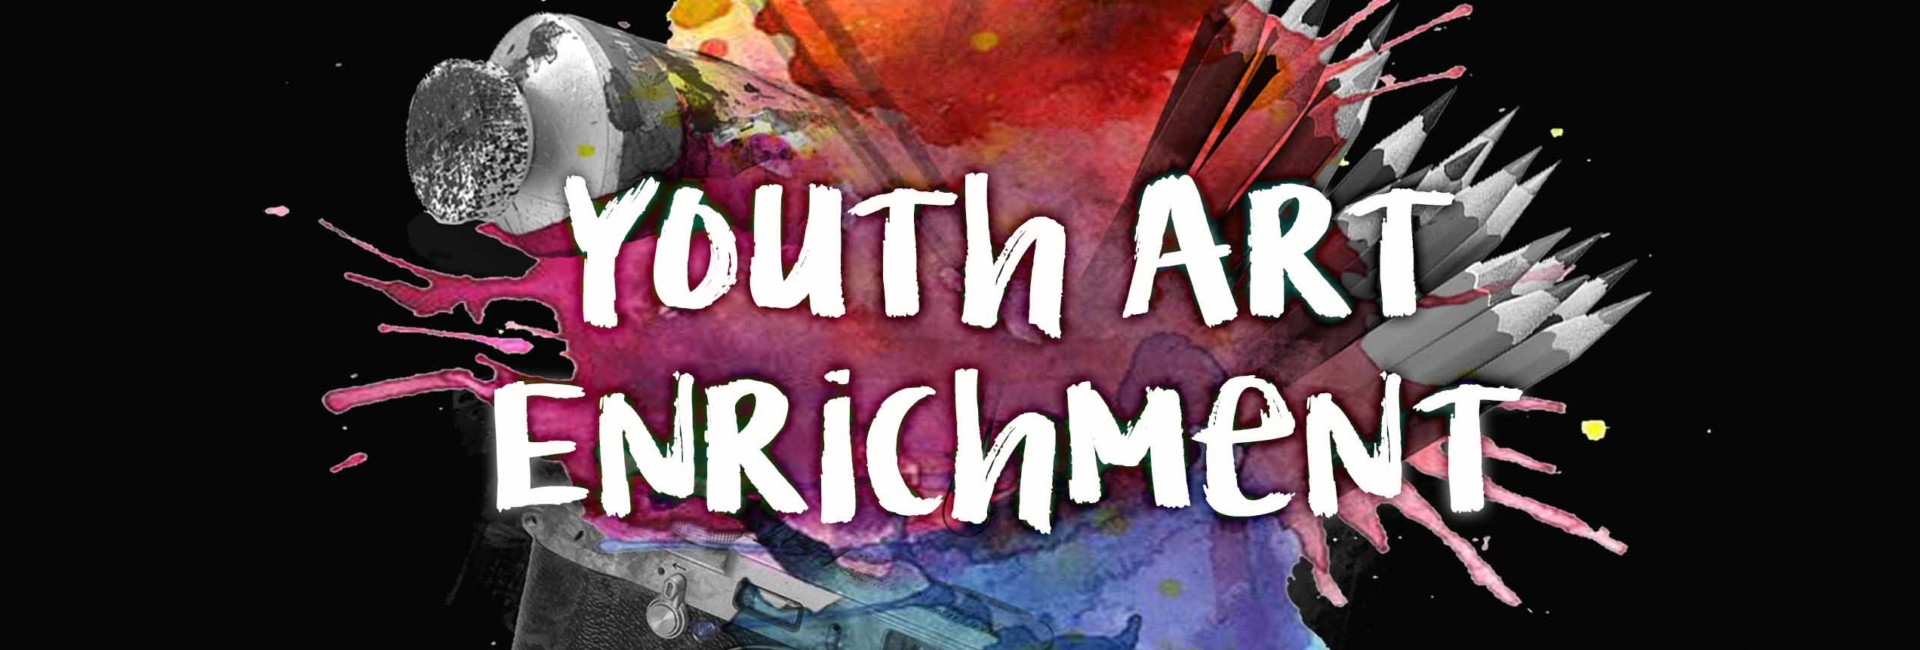 Youth Art Enrichment! March 19-22, 2018